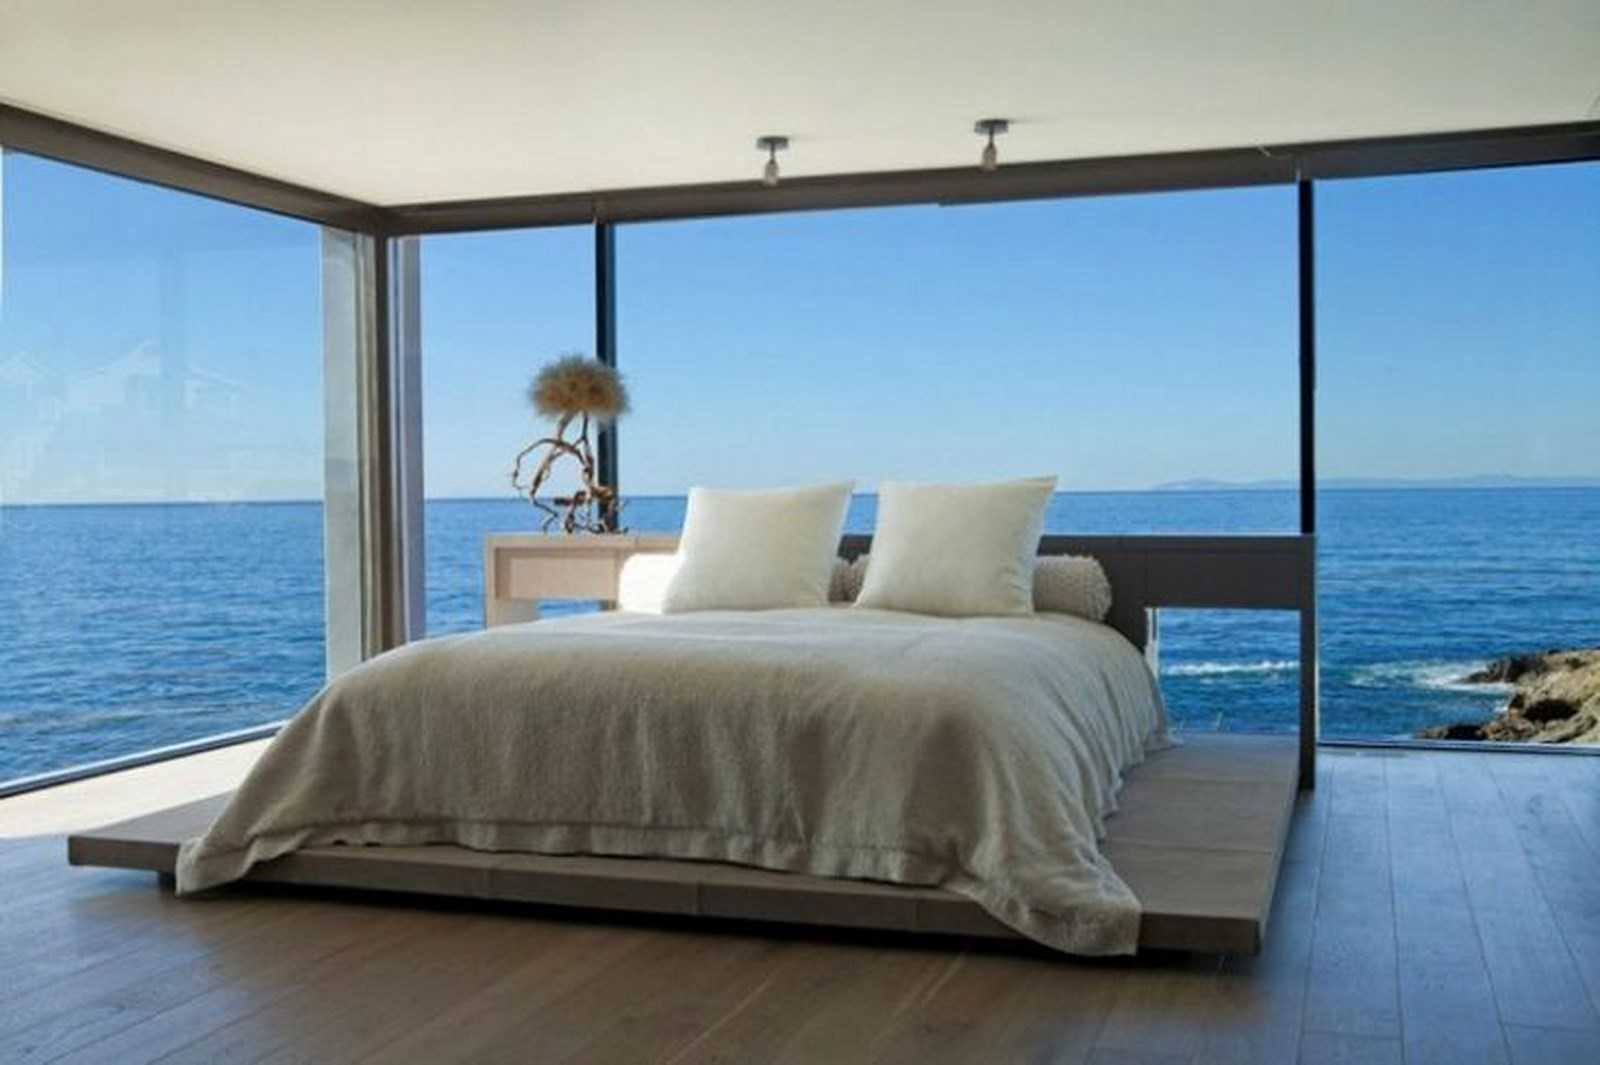 18 Really Amazing Bedroom Ideas WIth Glass Wall To Enjoy ... on Amazing Bedroom  id=41068